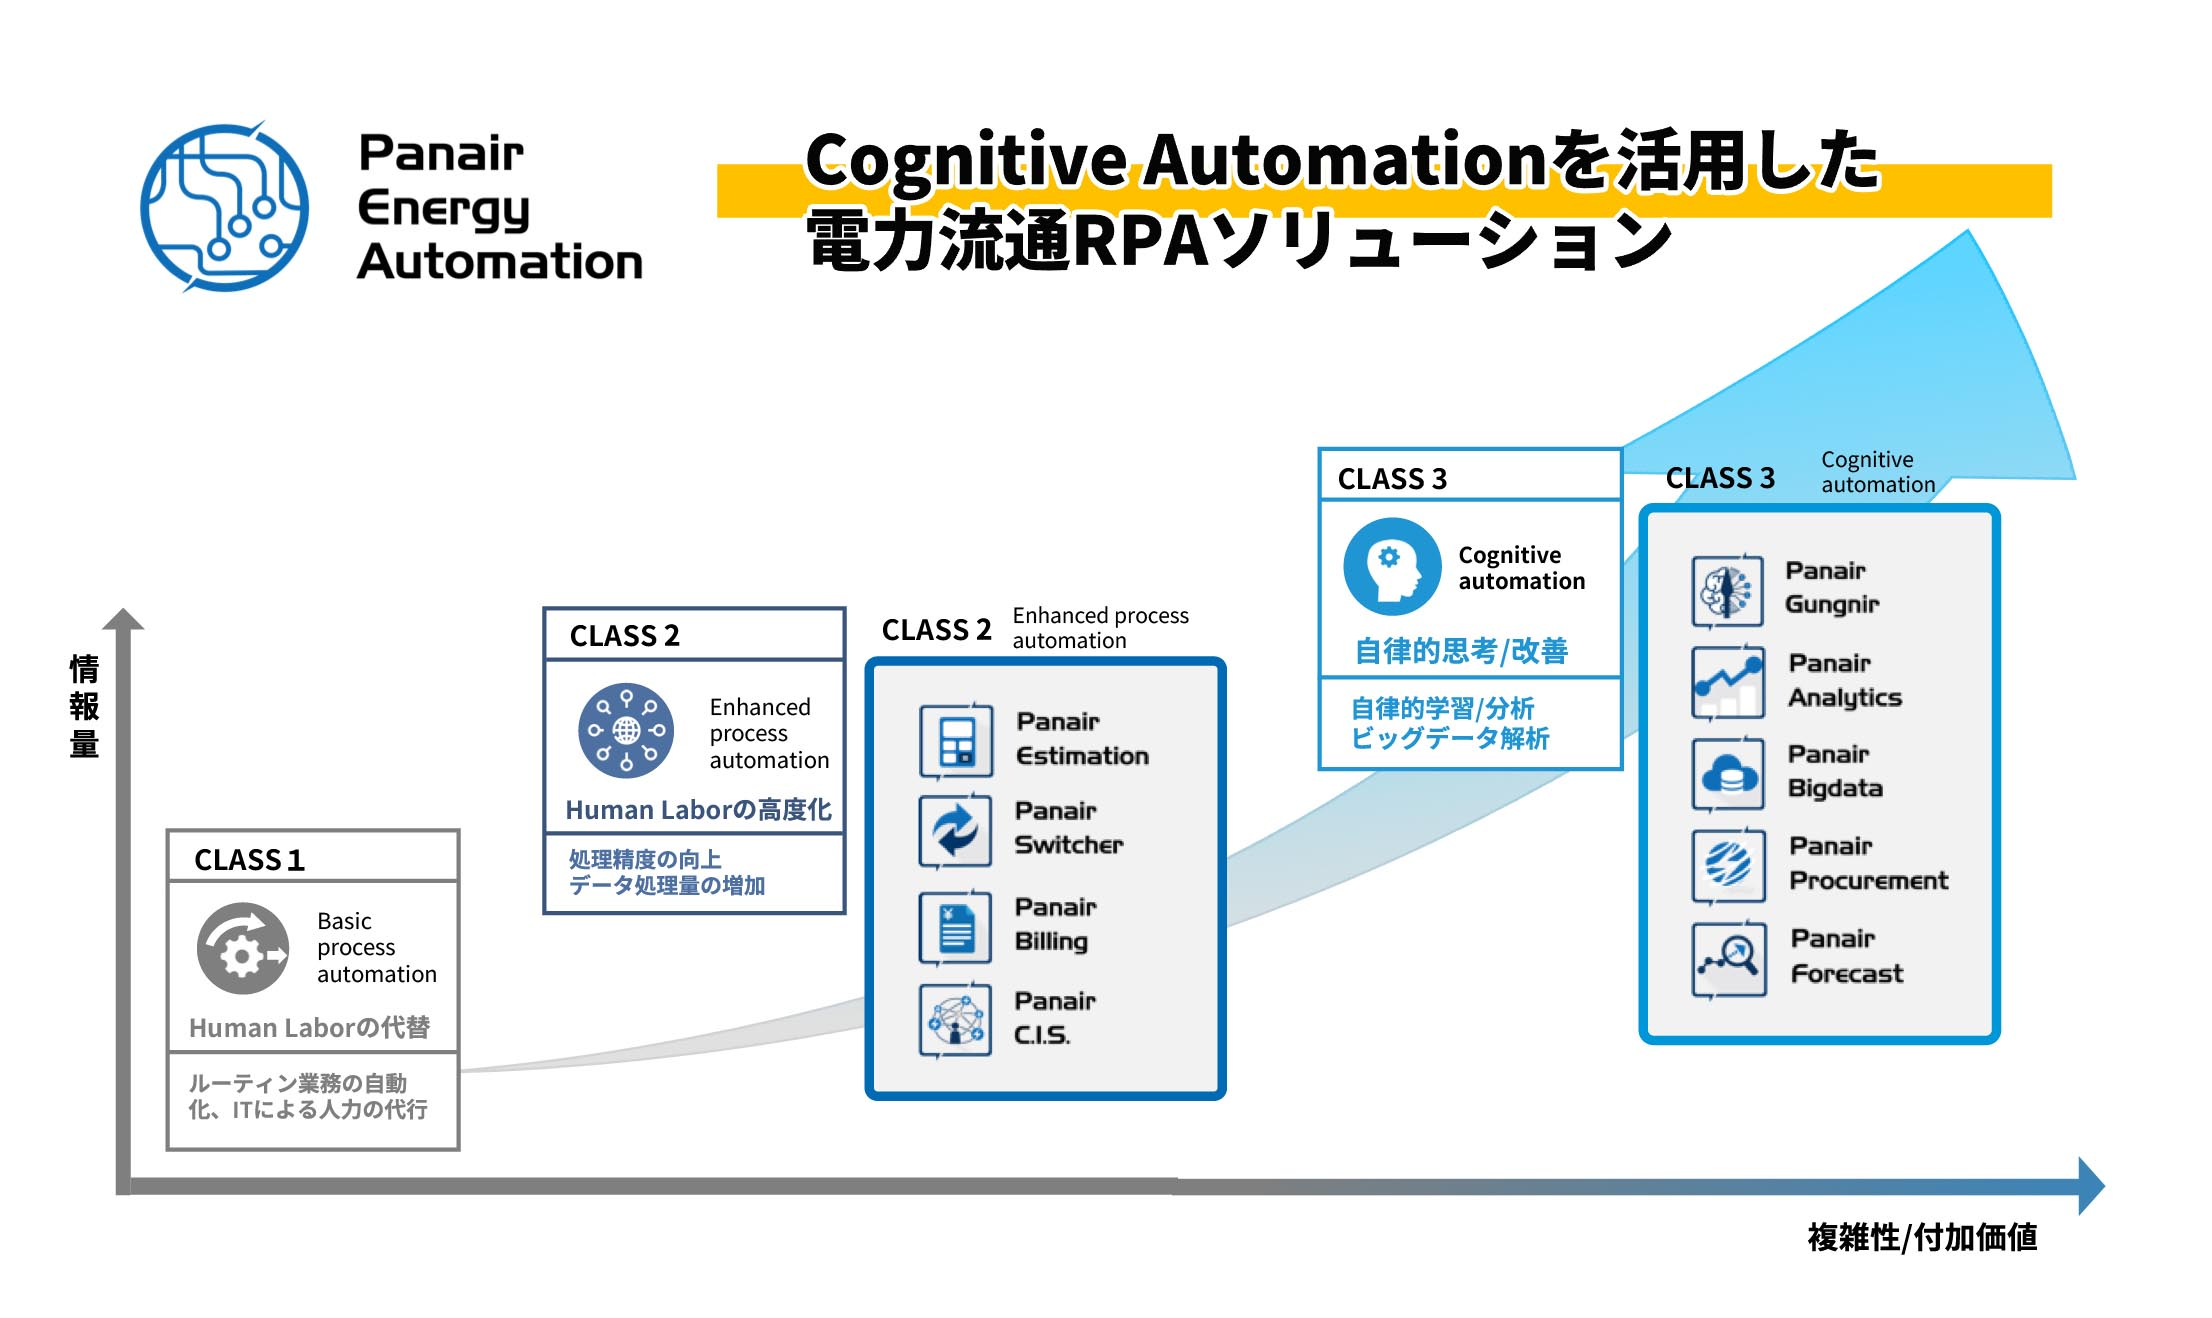 Panair Energy AutomationのRPA Class